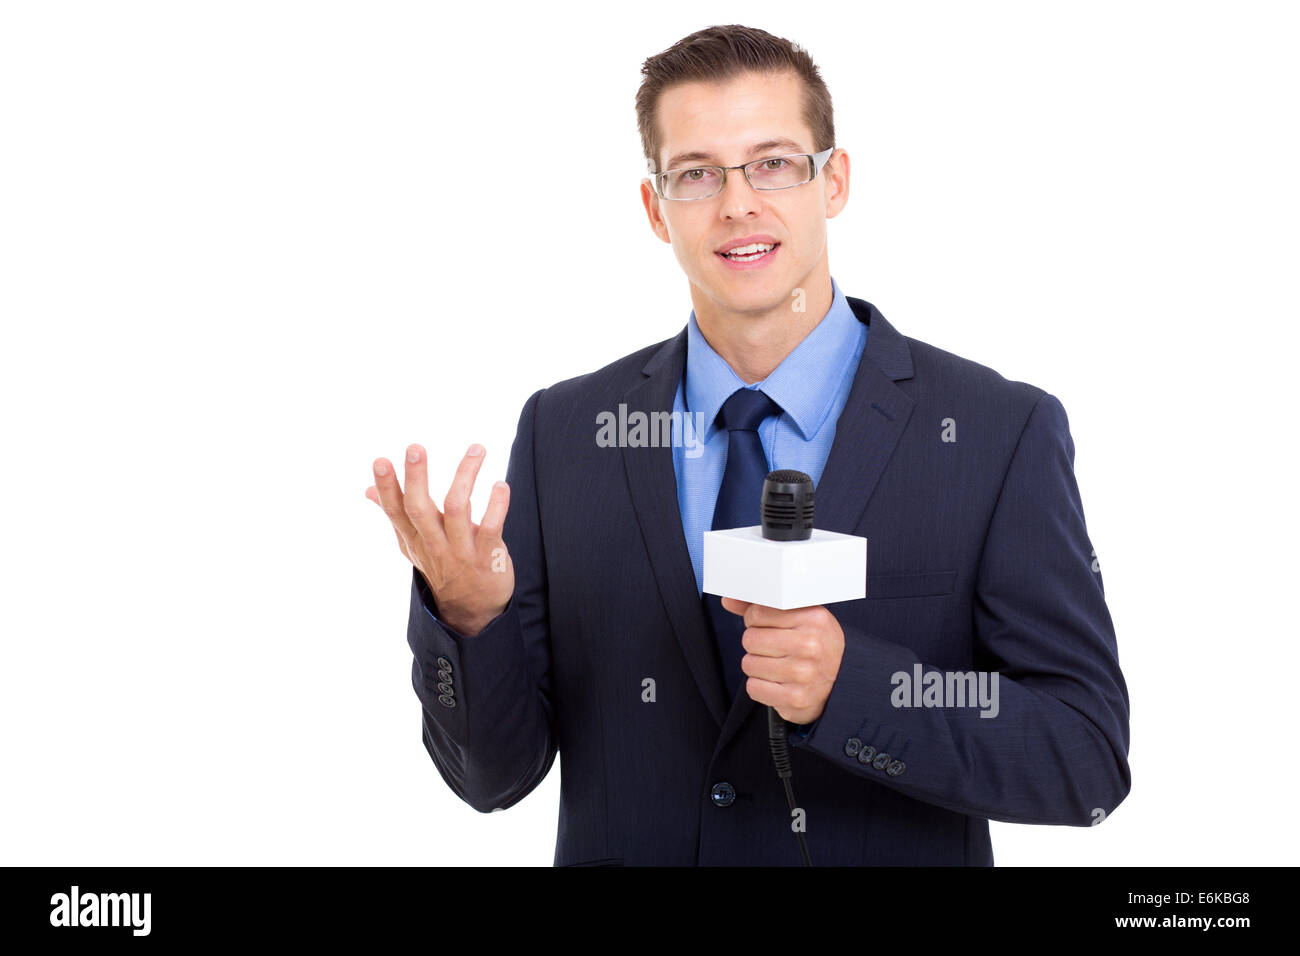 professional news reporter in live broadcasting - Stock Image